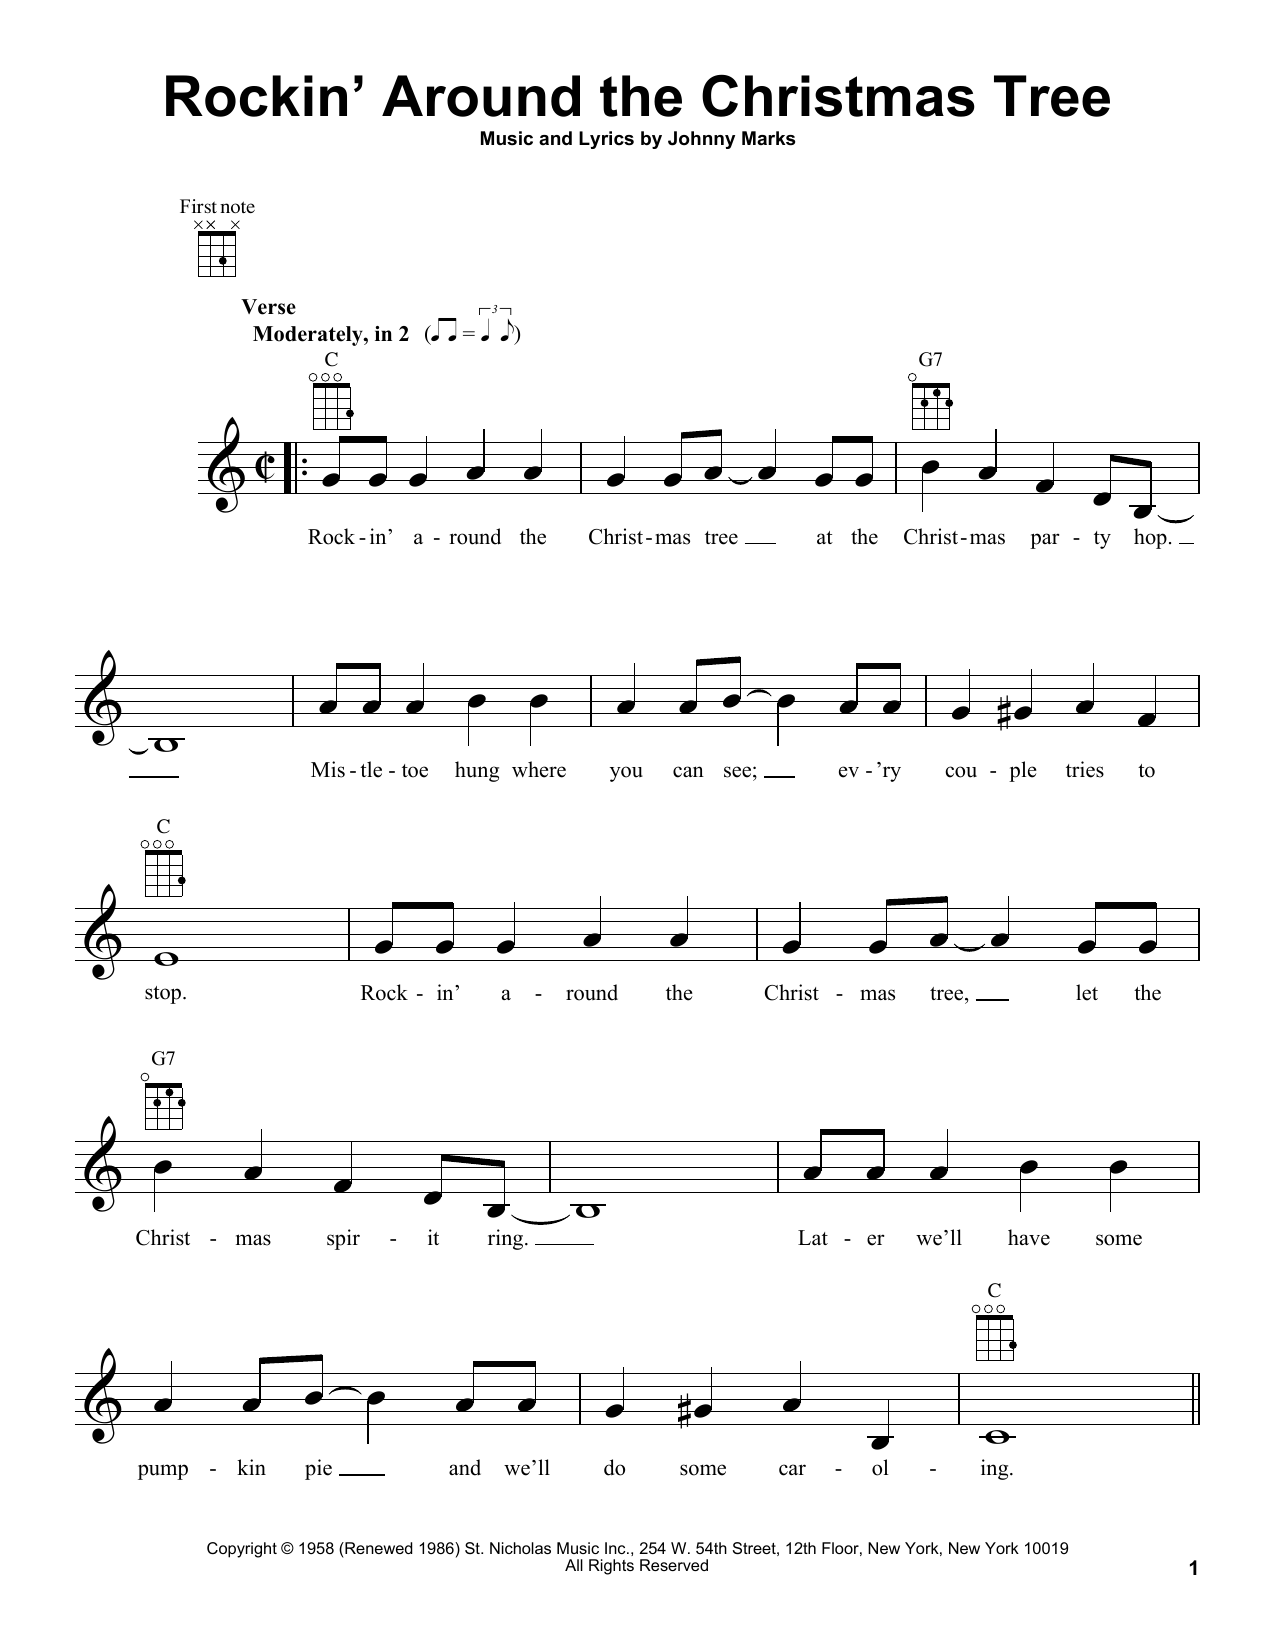 Rockin Around The Christmas Tree Piano Sheet Music.Johnny Marks Rockin Around The Christmas Tree Sheet Music Notes Chords Download Printable Alto Saxophone Sku 177228